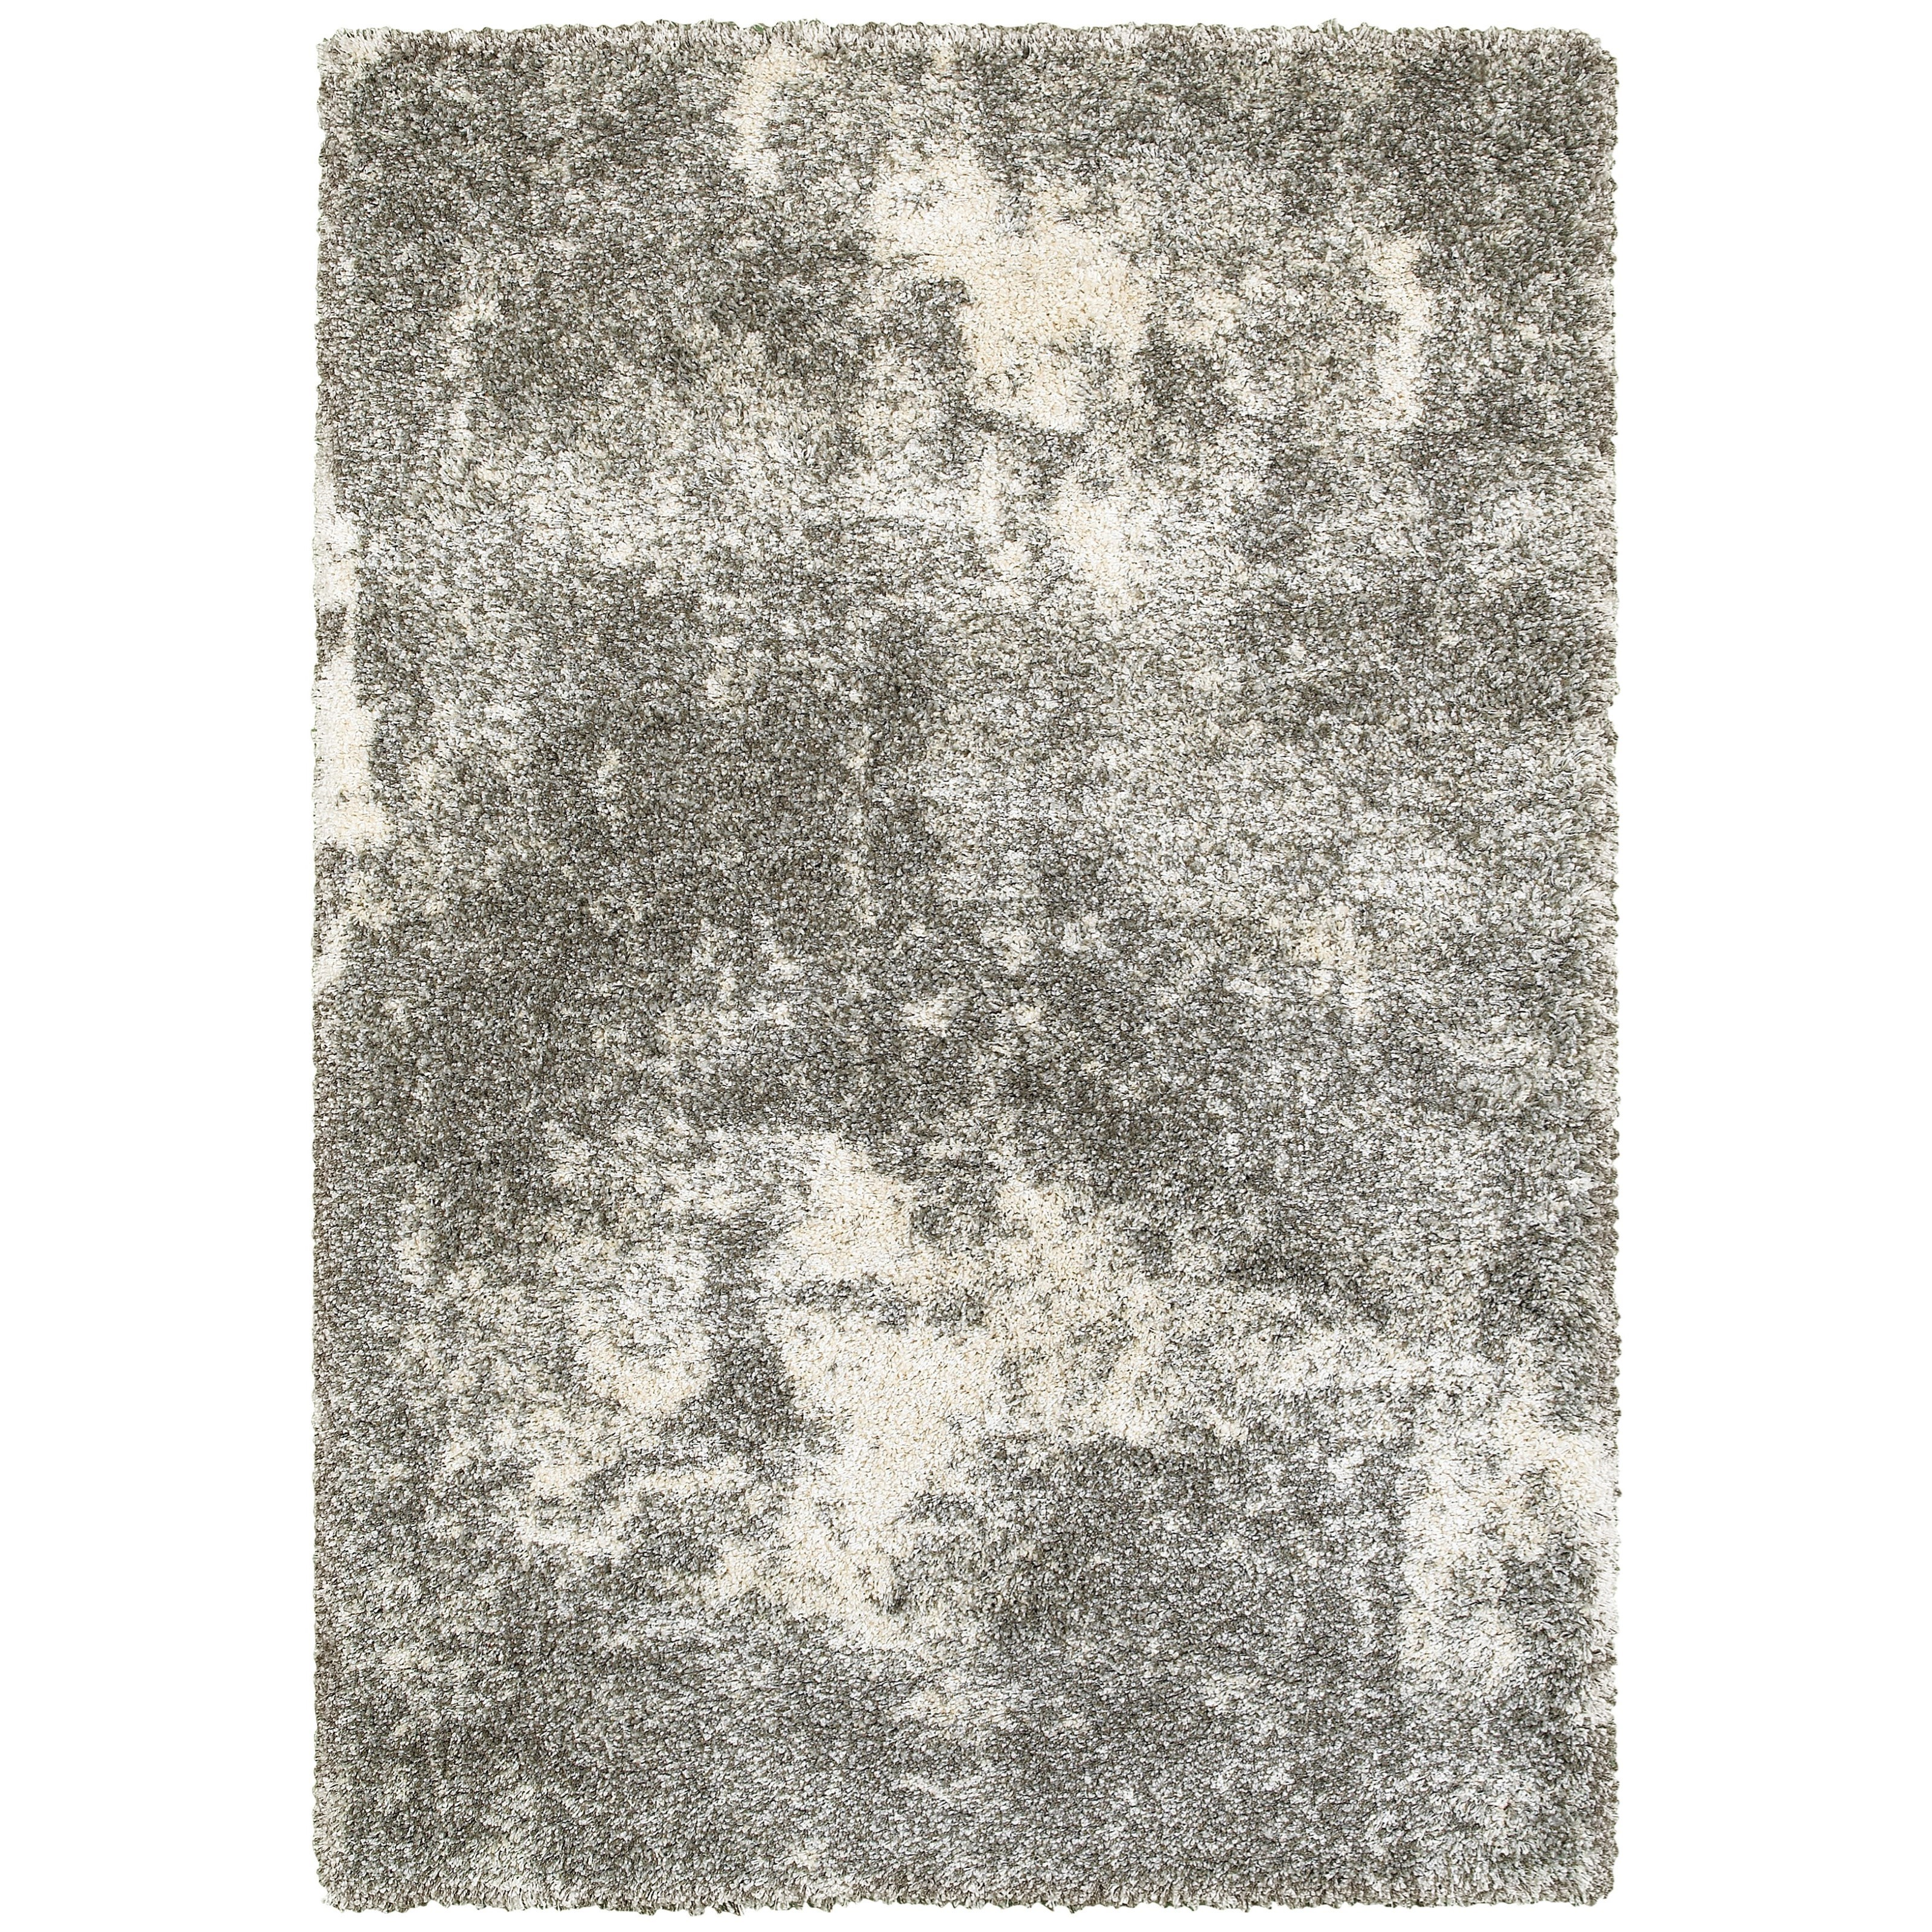 """Henderson 9'10"""" X 12'10"""" Shag Grey/ Ivory Rectangle Ru by Oriental Weavers at Miller Waldrop Furniture and Decor"""